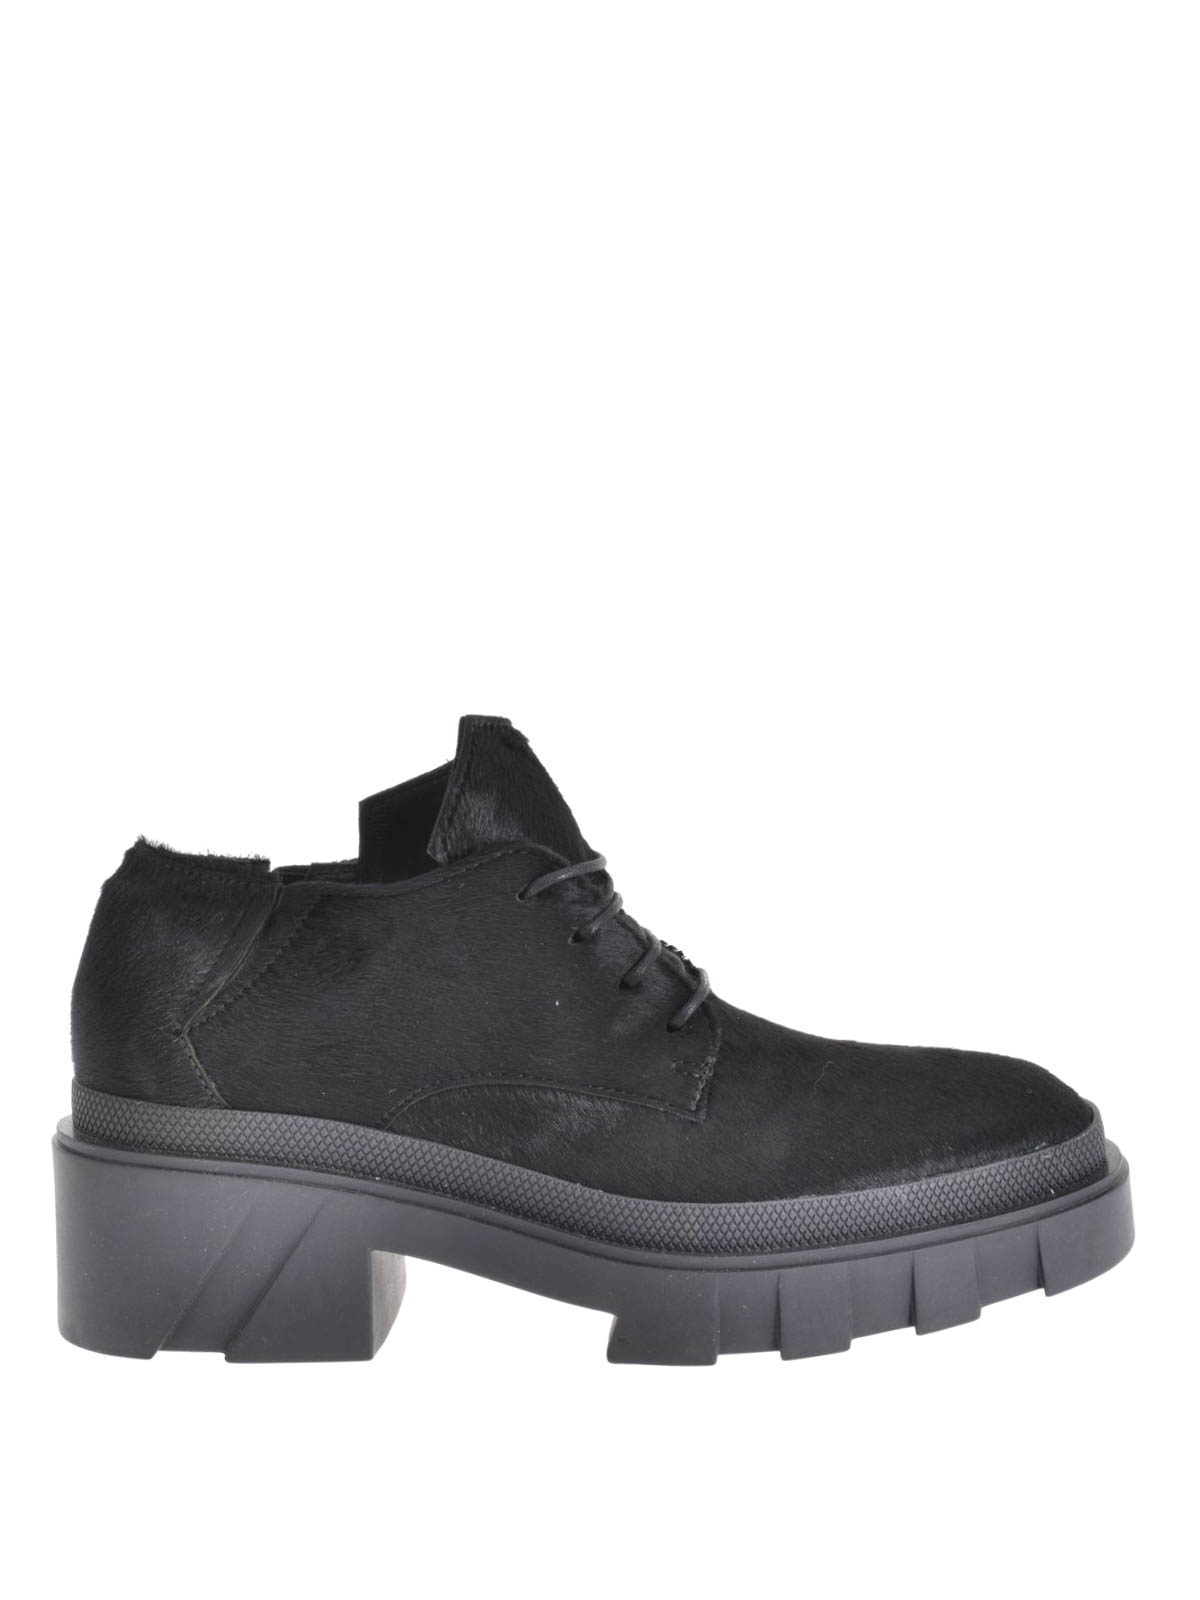 discount footlocker finishline CINZIA ARAIA Laced shoes the cheapest cheap online cheap view classic cheap online lowest price sale online O7gNwGn